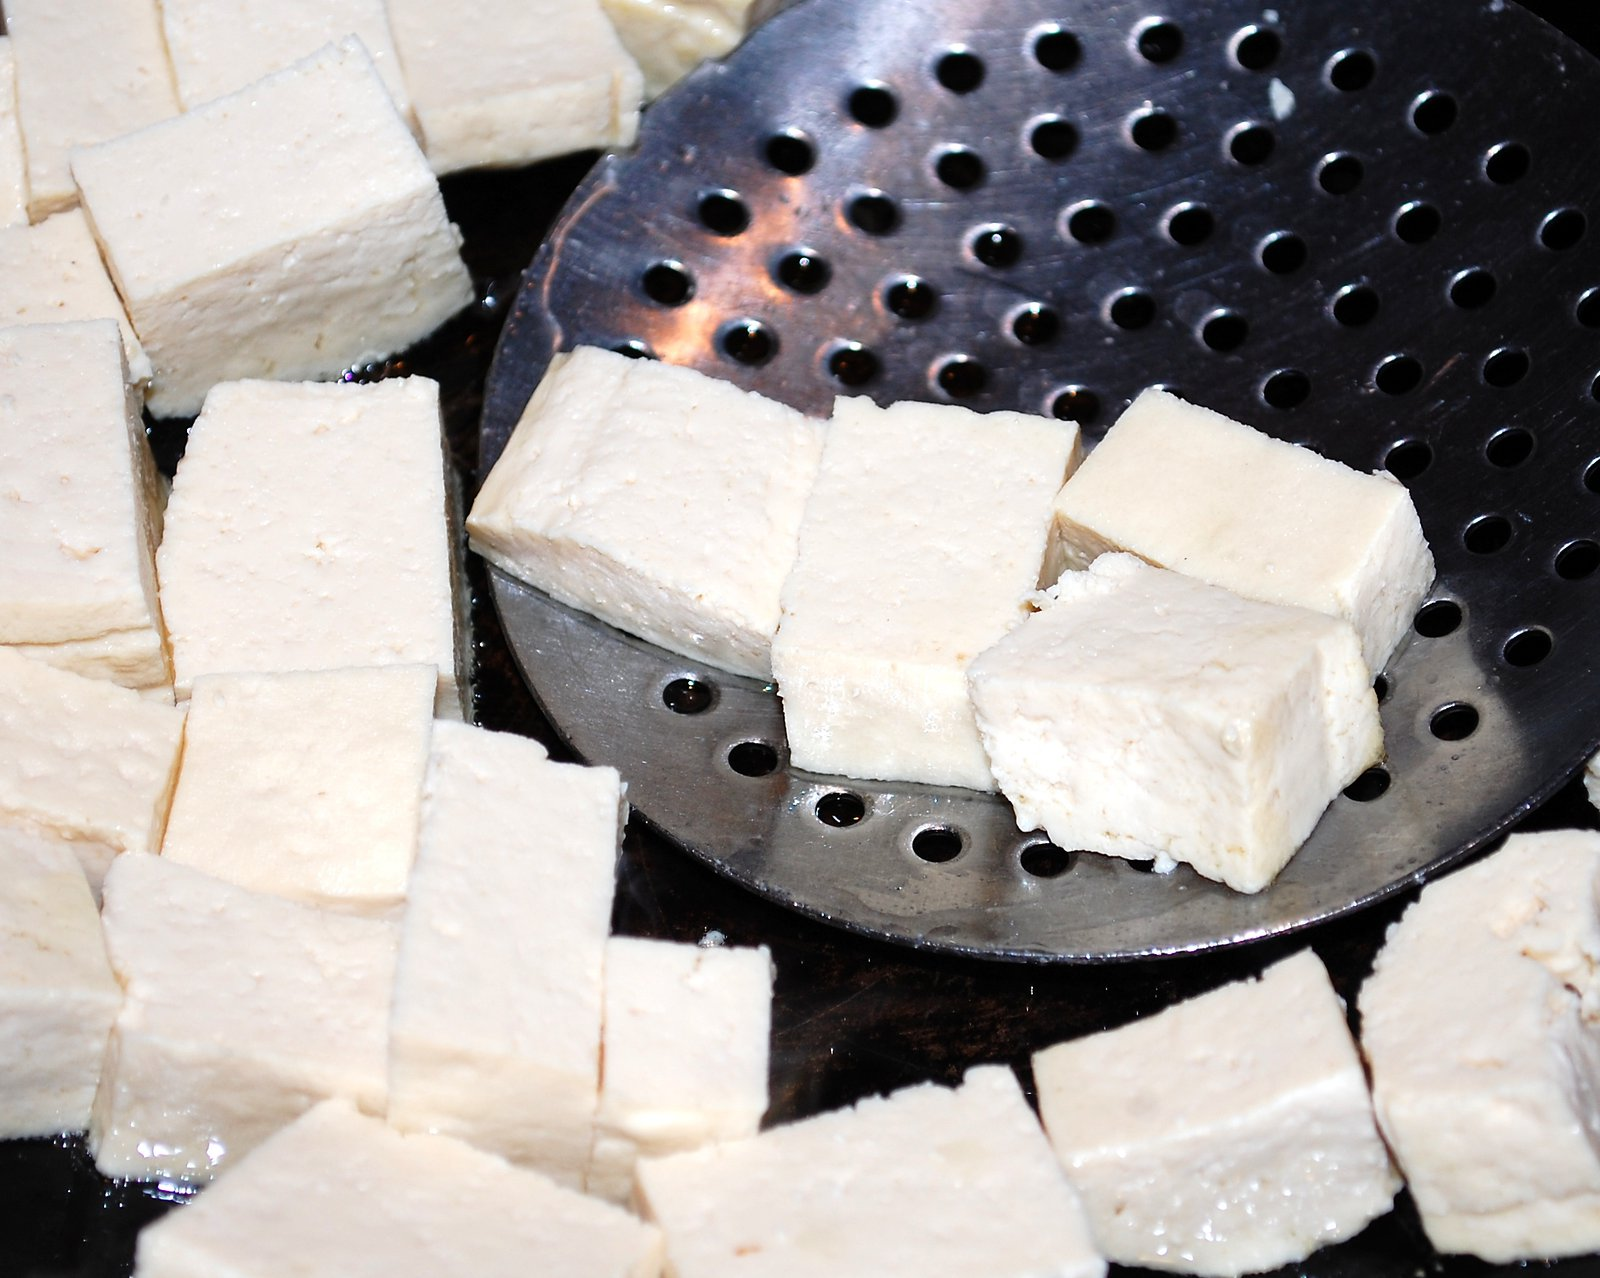 Stir Fry The Tofu Cubes